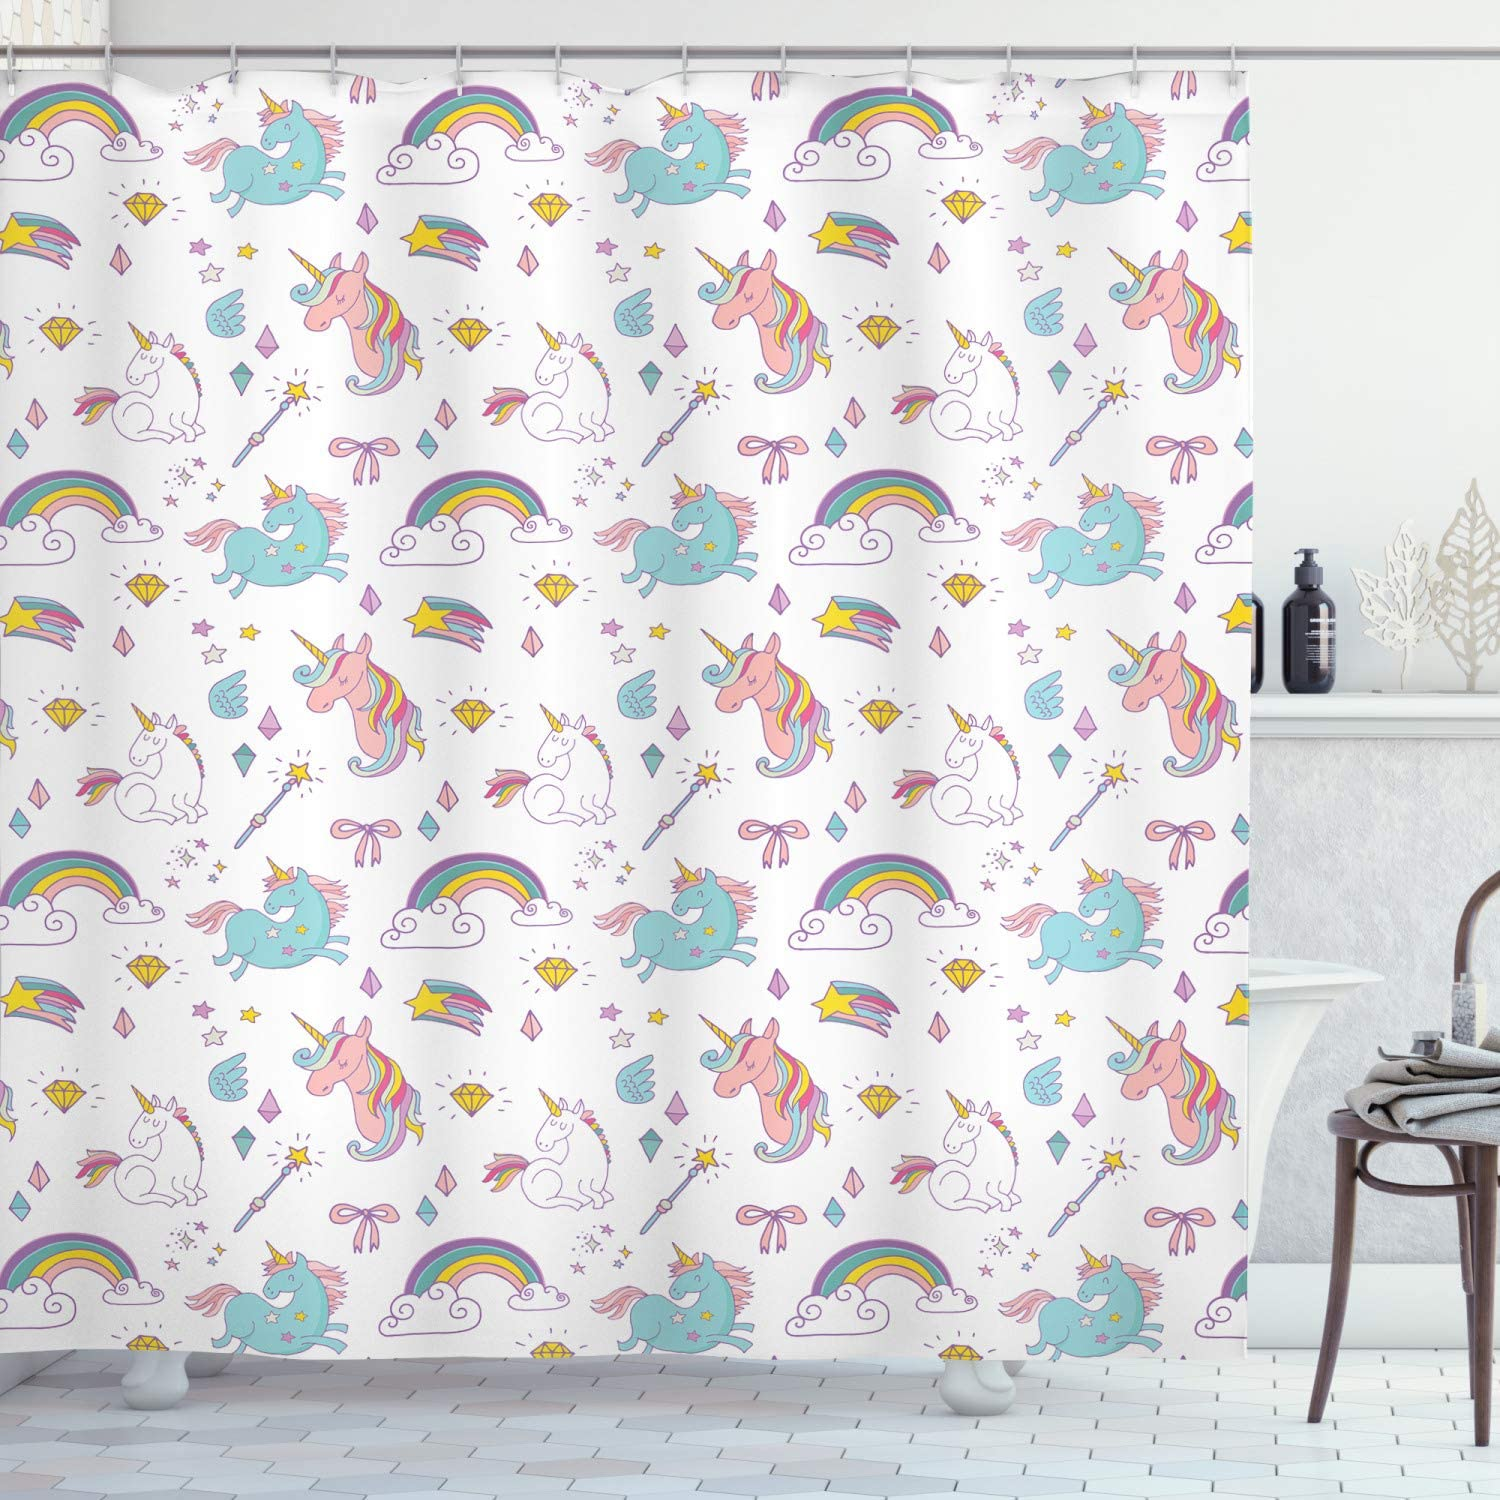 Amazon Com Ambesonne Unicorn Shower Curtain Magic Unicorn Forms With Colorful Cartoon Fantasy Cloud And Rainbow Pattern Print Cloth Fabric Bathroom Decor Set With Hooks 84 Long Extra Seafoam Home Kitchen